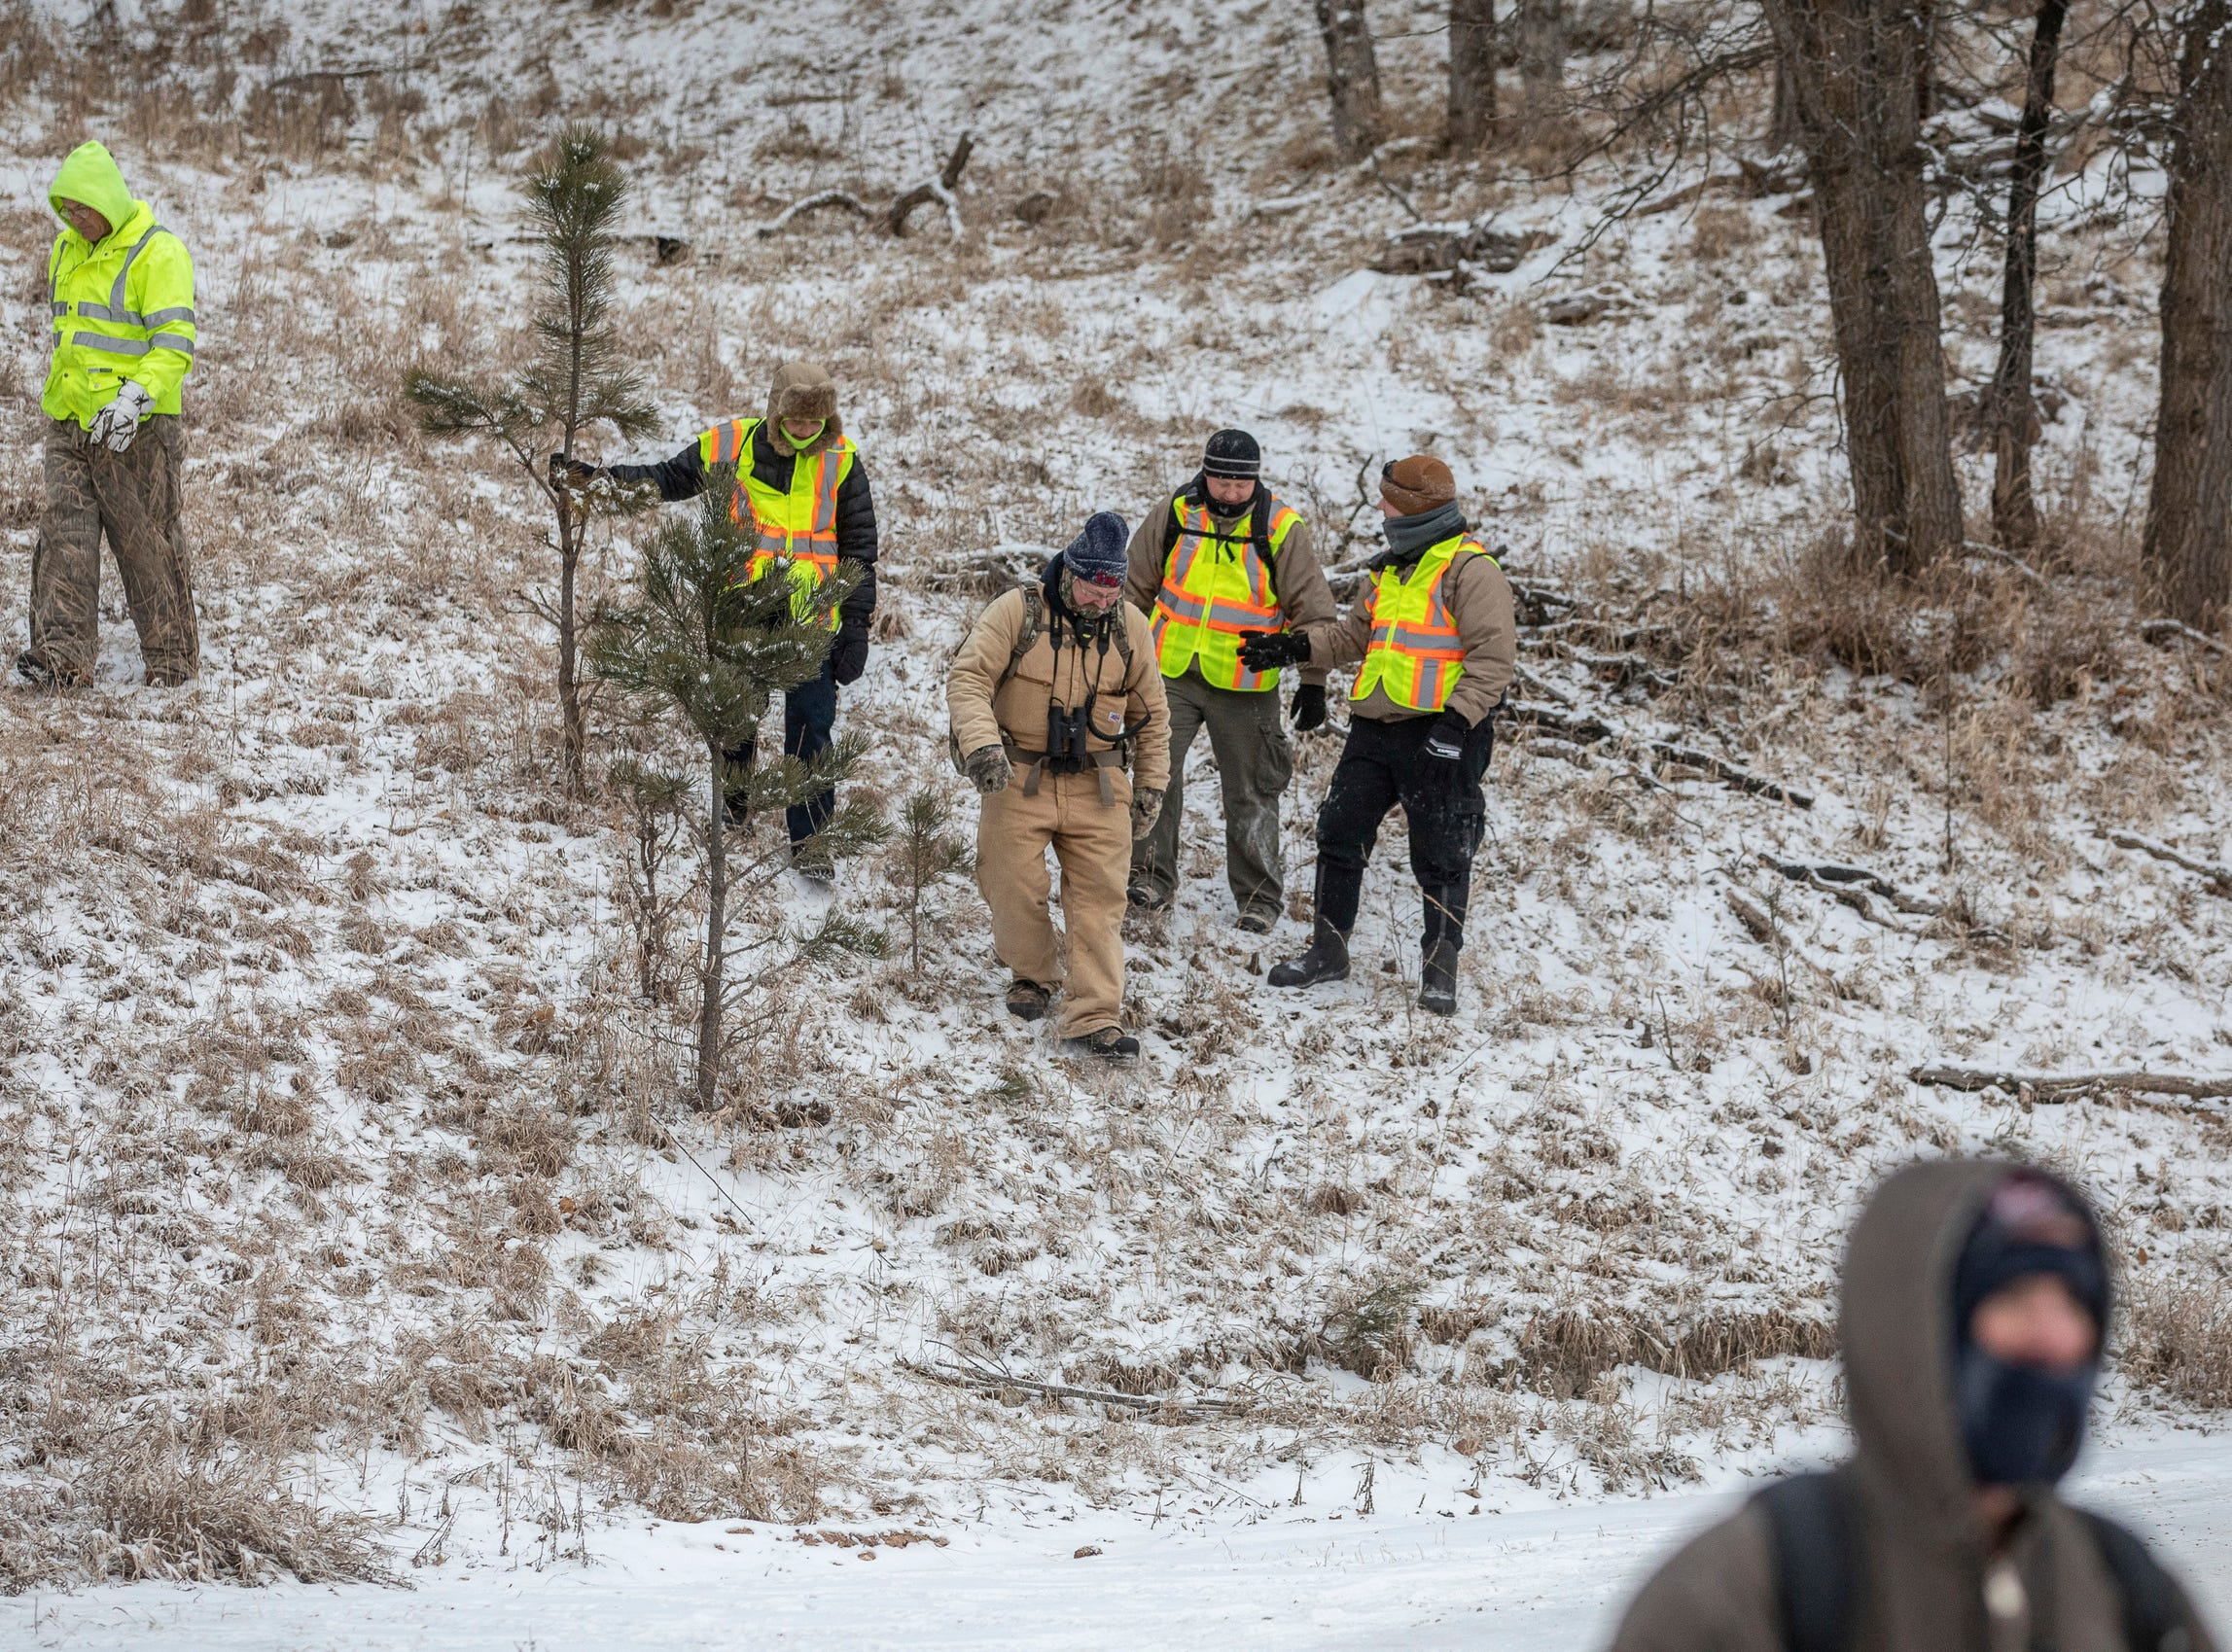 Searchers return to a parking lot at the Black Hills Children's Home near Rockerville, S.D., on Tuesday, Feb. 5, 2019, after looking for Serenity Dennard, a 9-year-old girl who was last seen Sunday morning leaving the Children's Home. Officials are encouraging anyone living in the Rockerville, Foster Gulch and Highway 16 area to check their property. (Ryan Hermens/Rapid City Journal via AP)